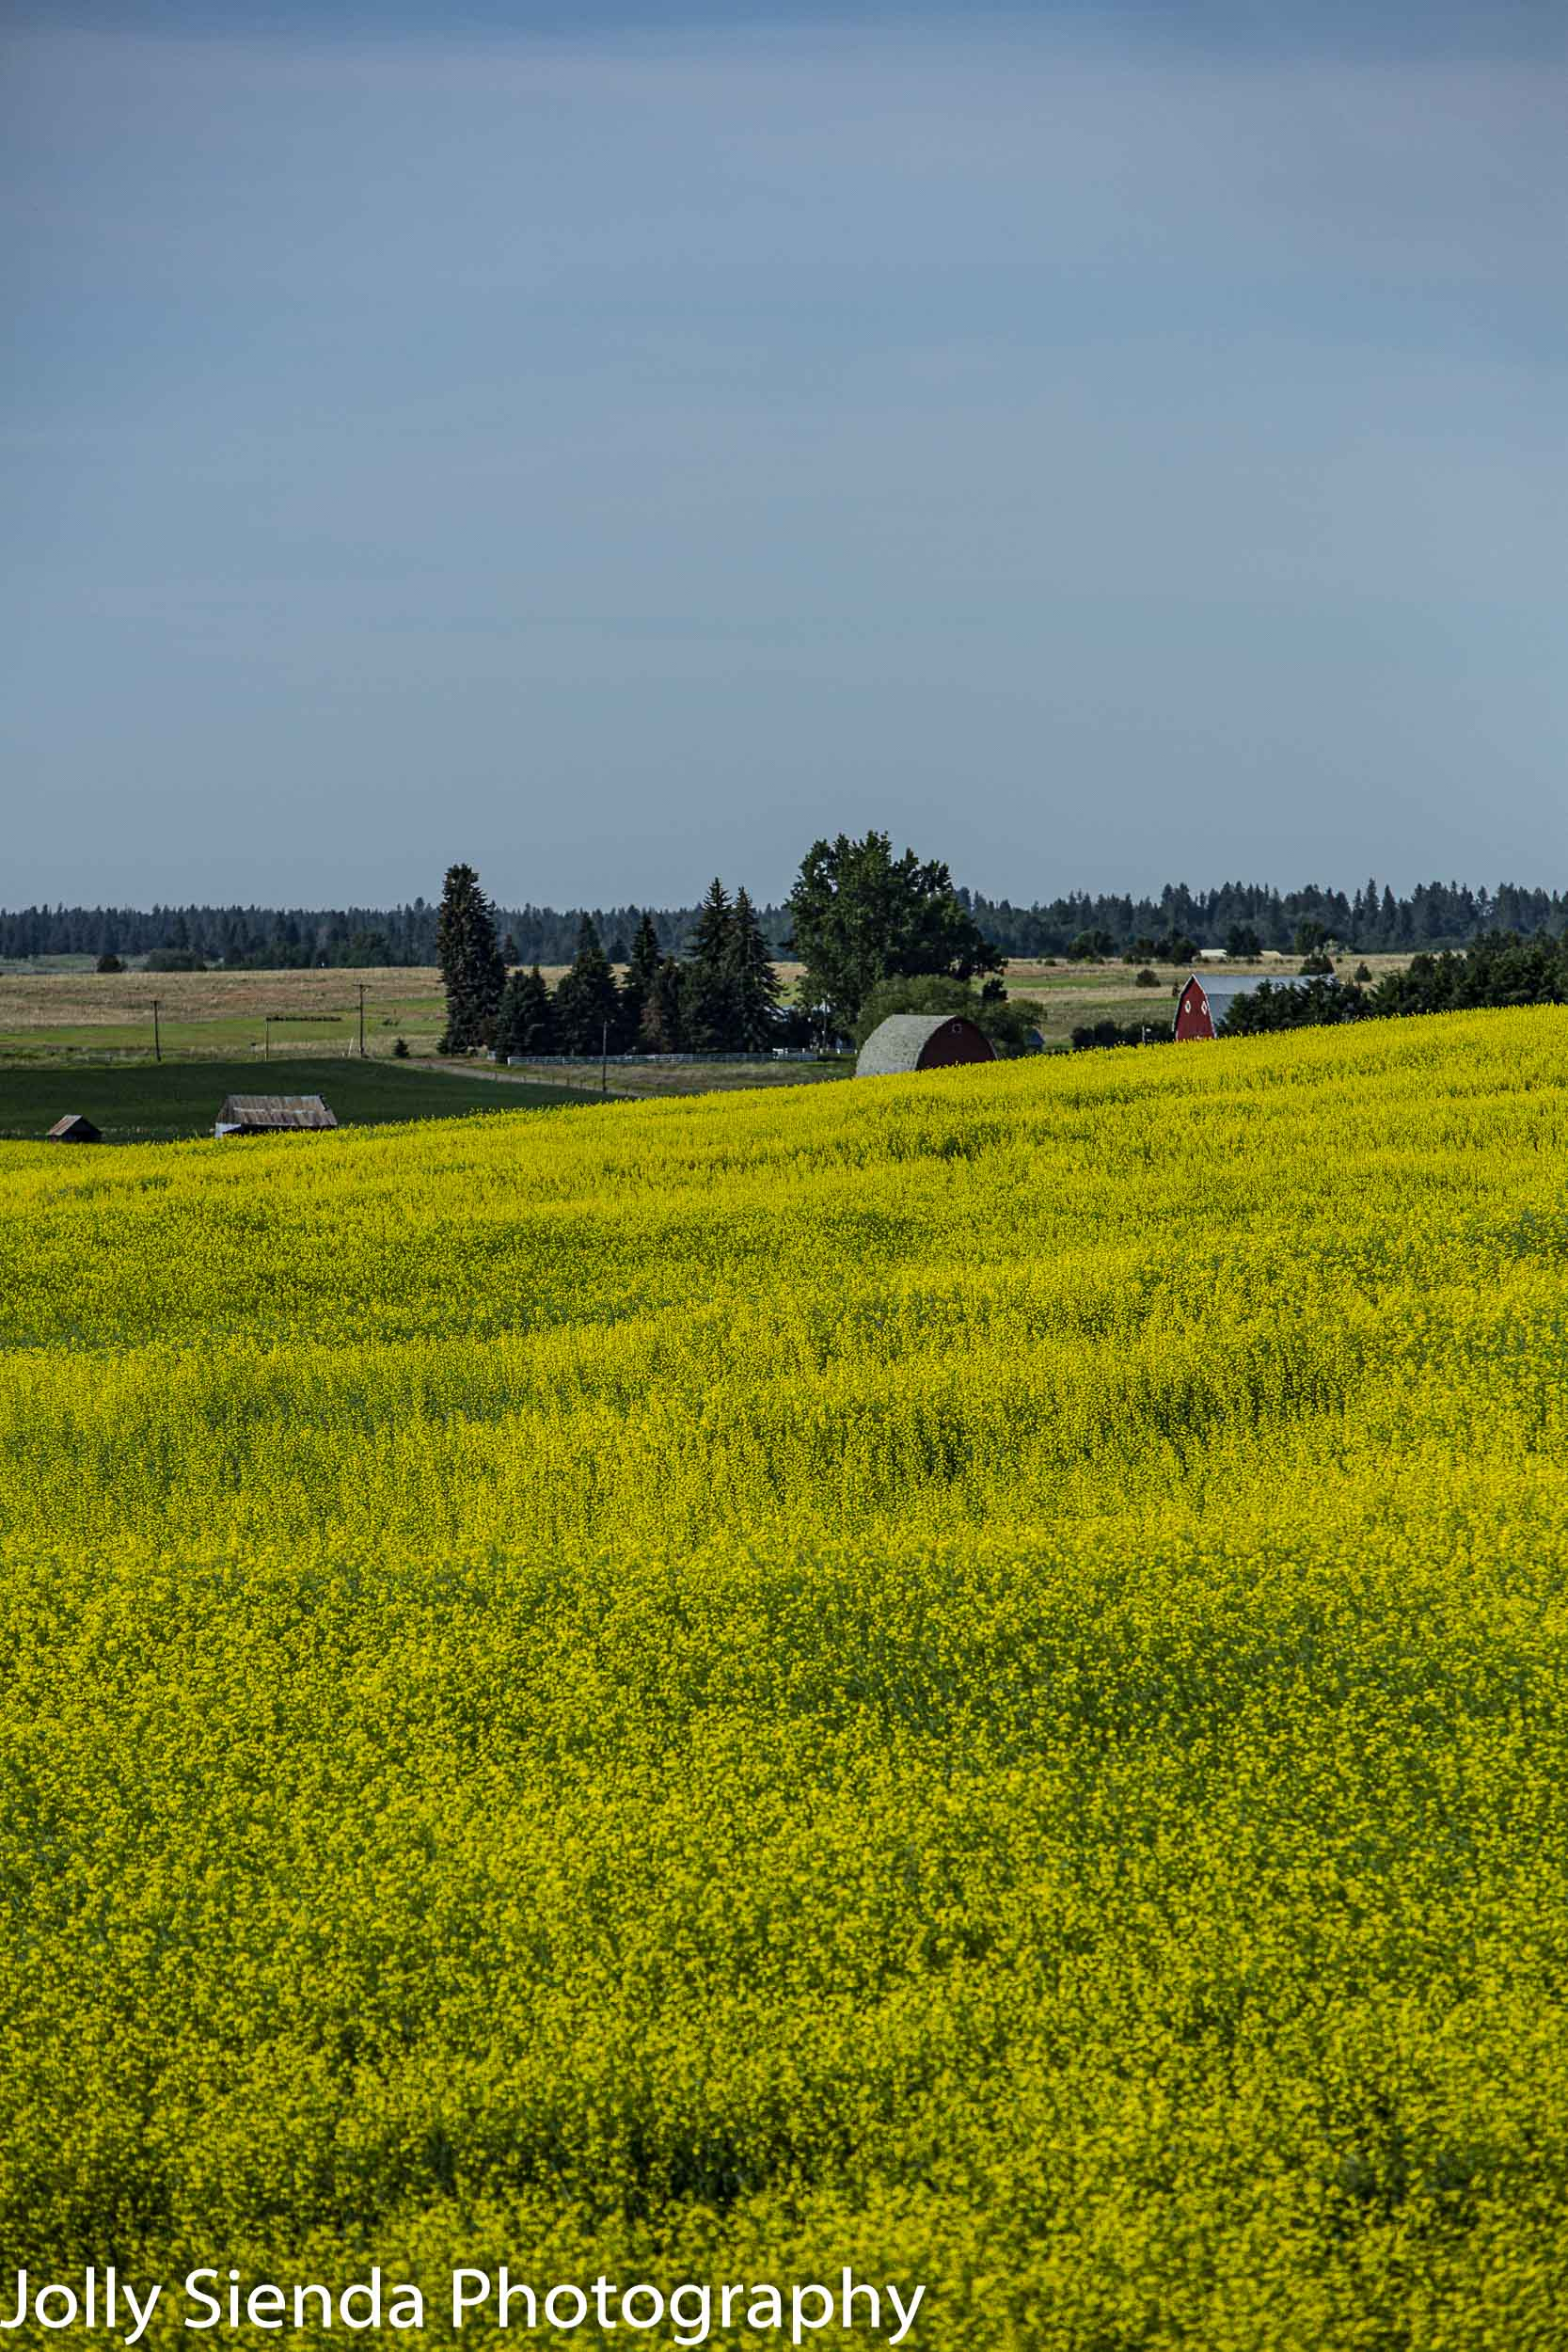 Yellow mustard fields lead to the red barns